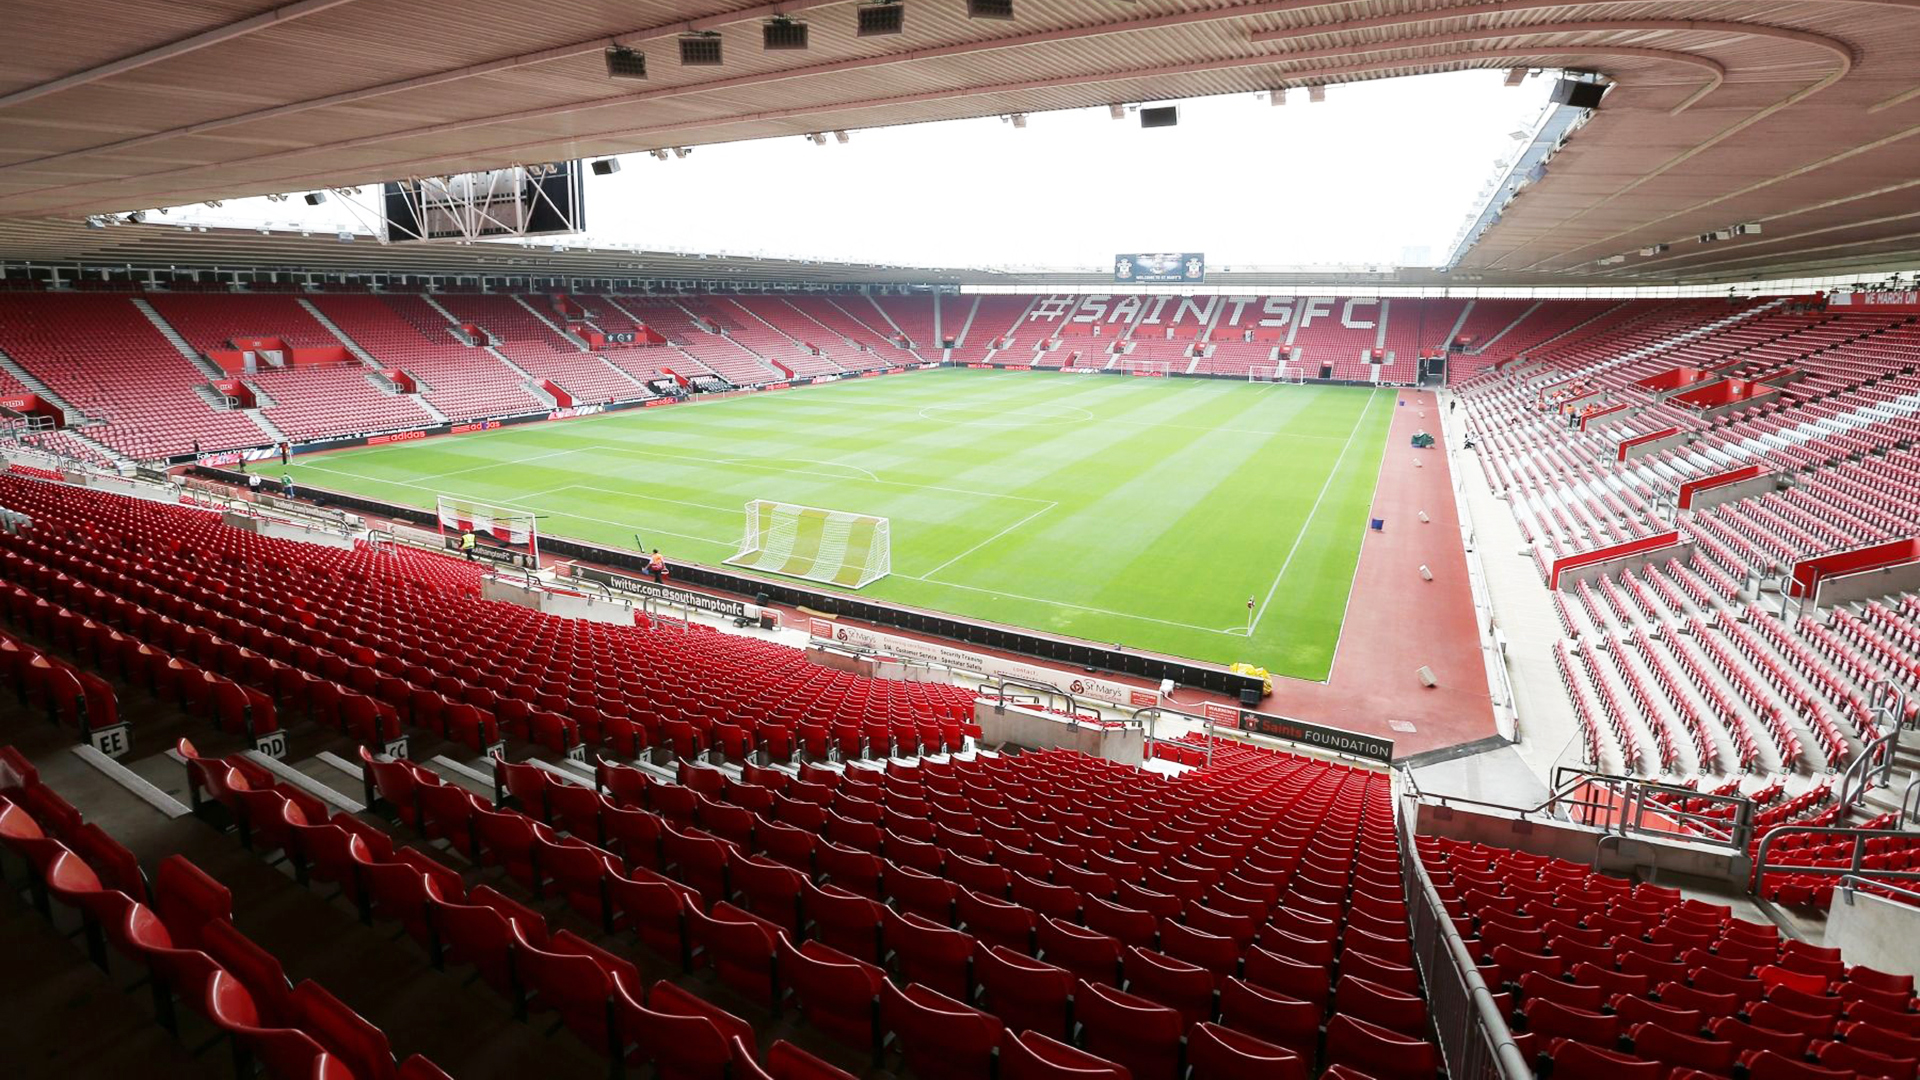 St Mary's Stadium. Virtual background to use on Zoom, Microsoft Teams, Skype, Google Meet, WebEx or any other compatible app.